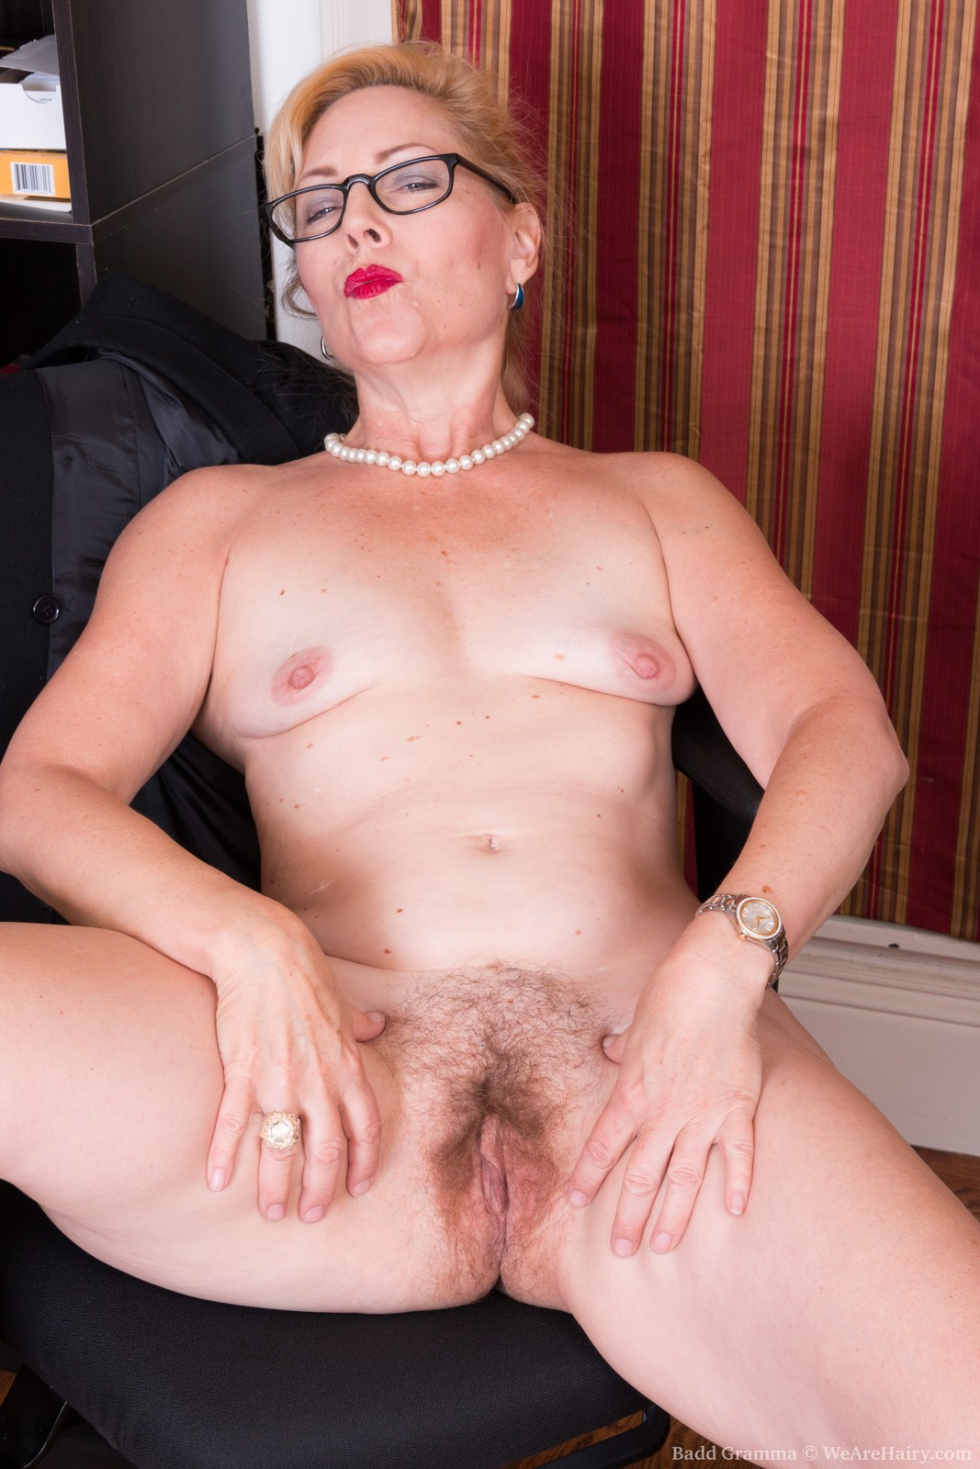 Beautiful mature blonde has her shaved pussy filled with a hook and clit pumped 9